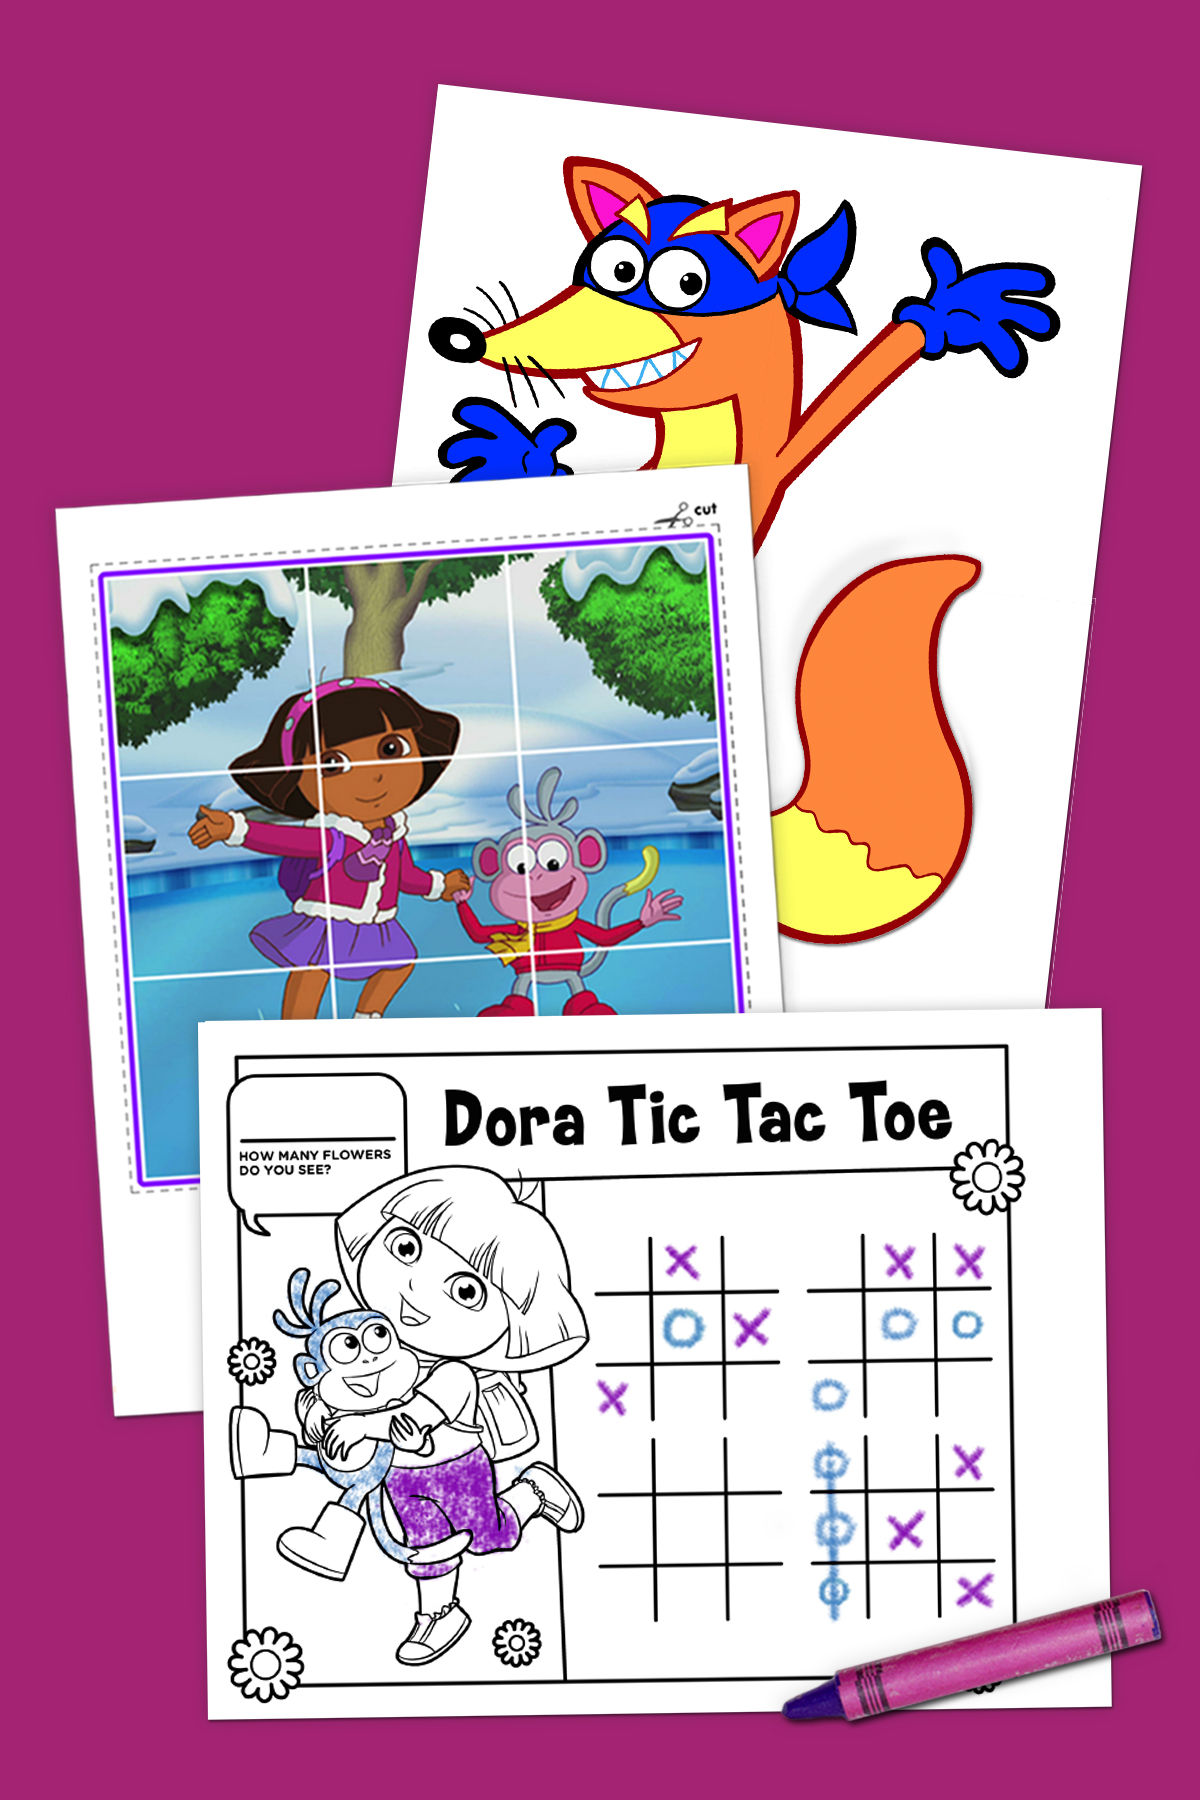 Top 10 Dora Printables of All Time